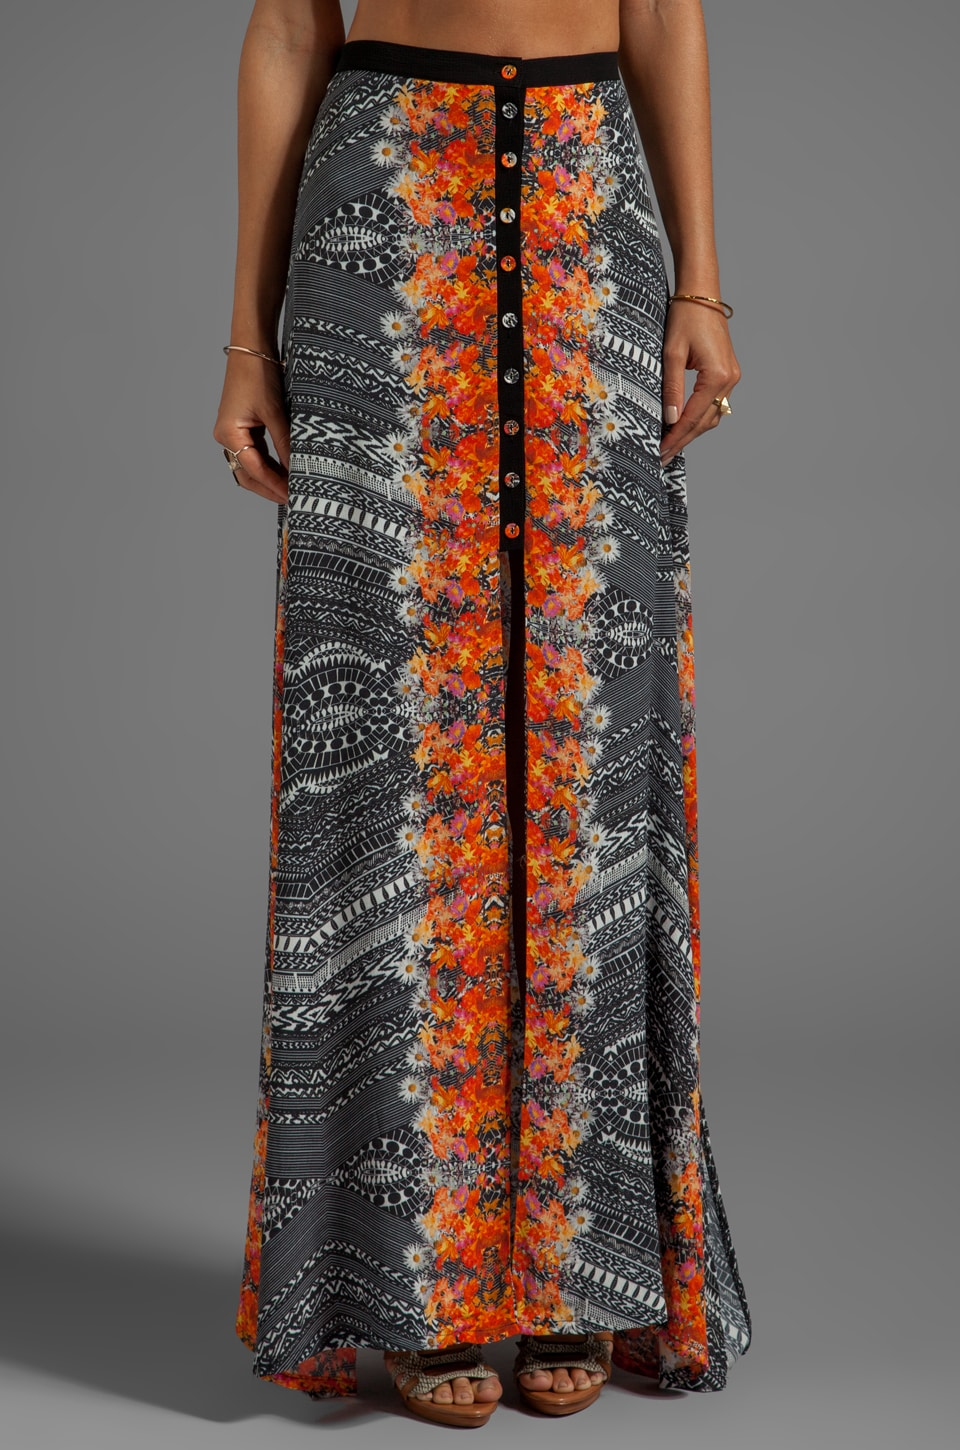 MINKPINK Reflections Maxi Skirt in Multi